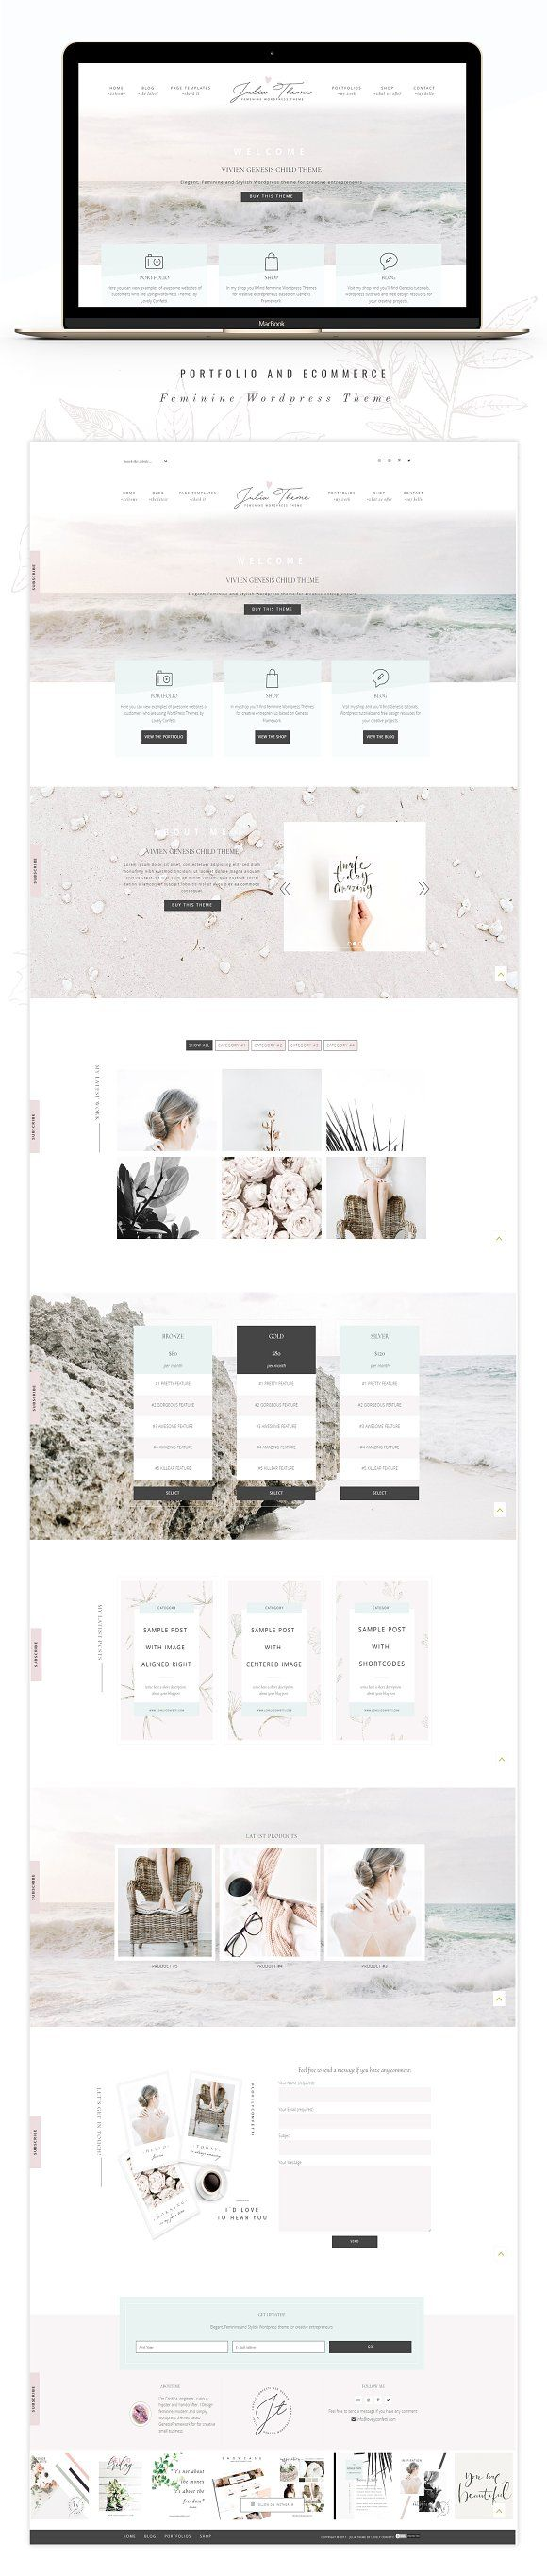 Photography eCommerce Genesis theme by Lovely Confetti on @creativemarket